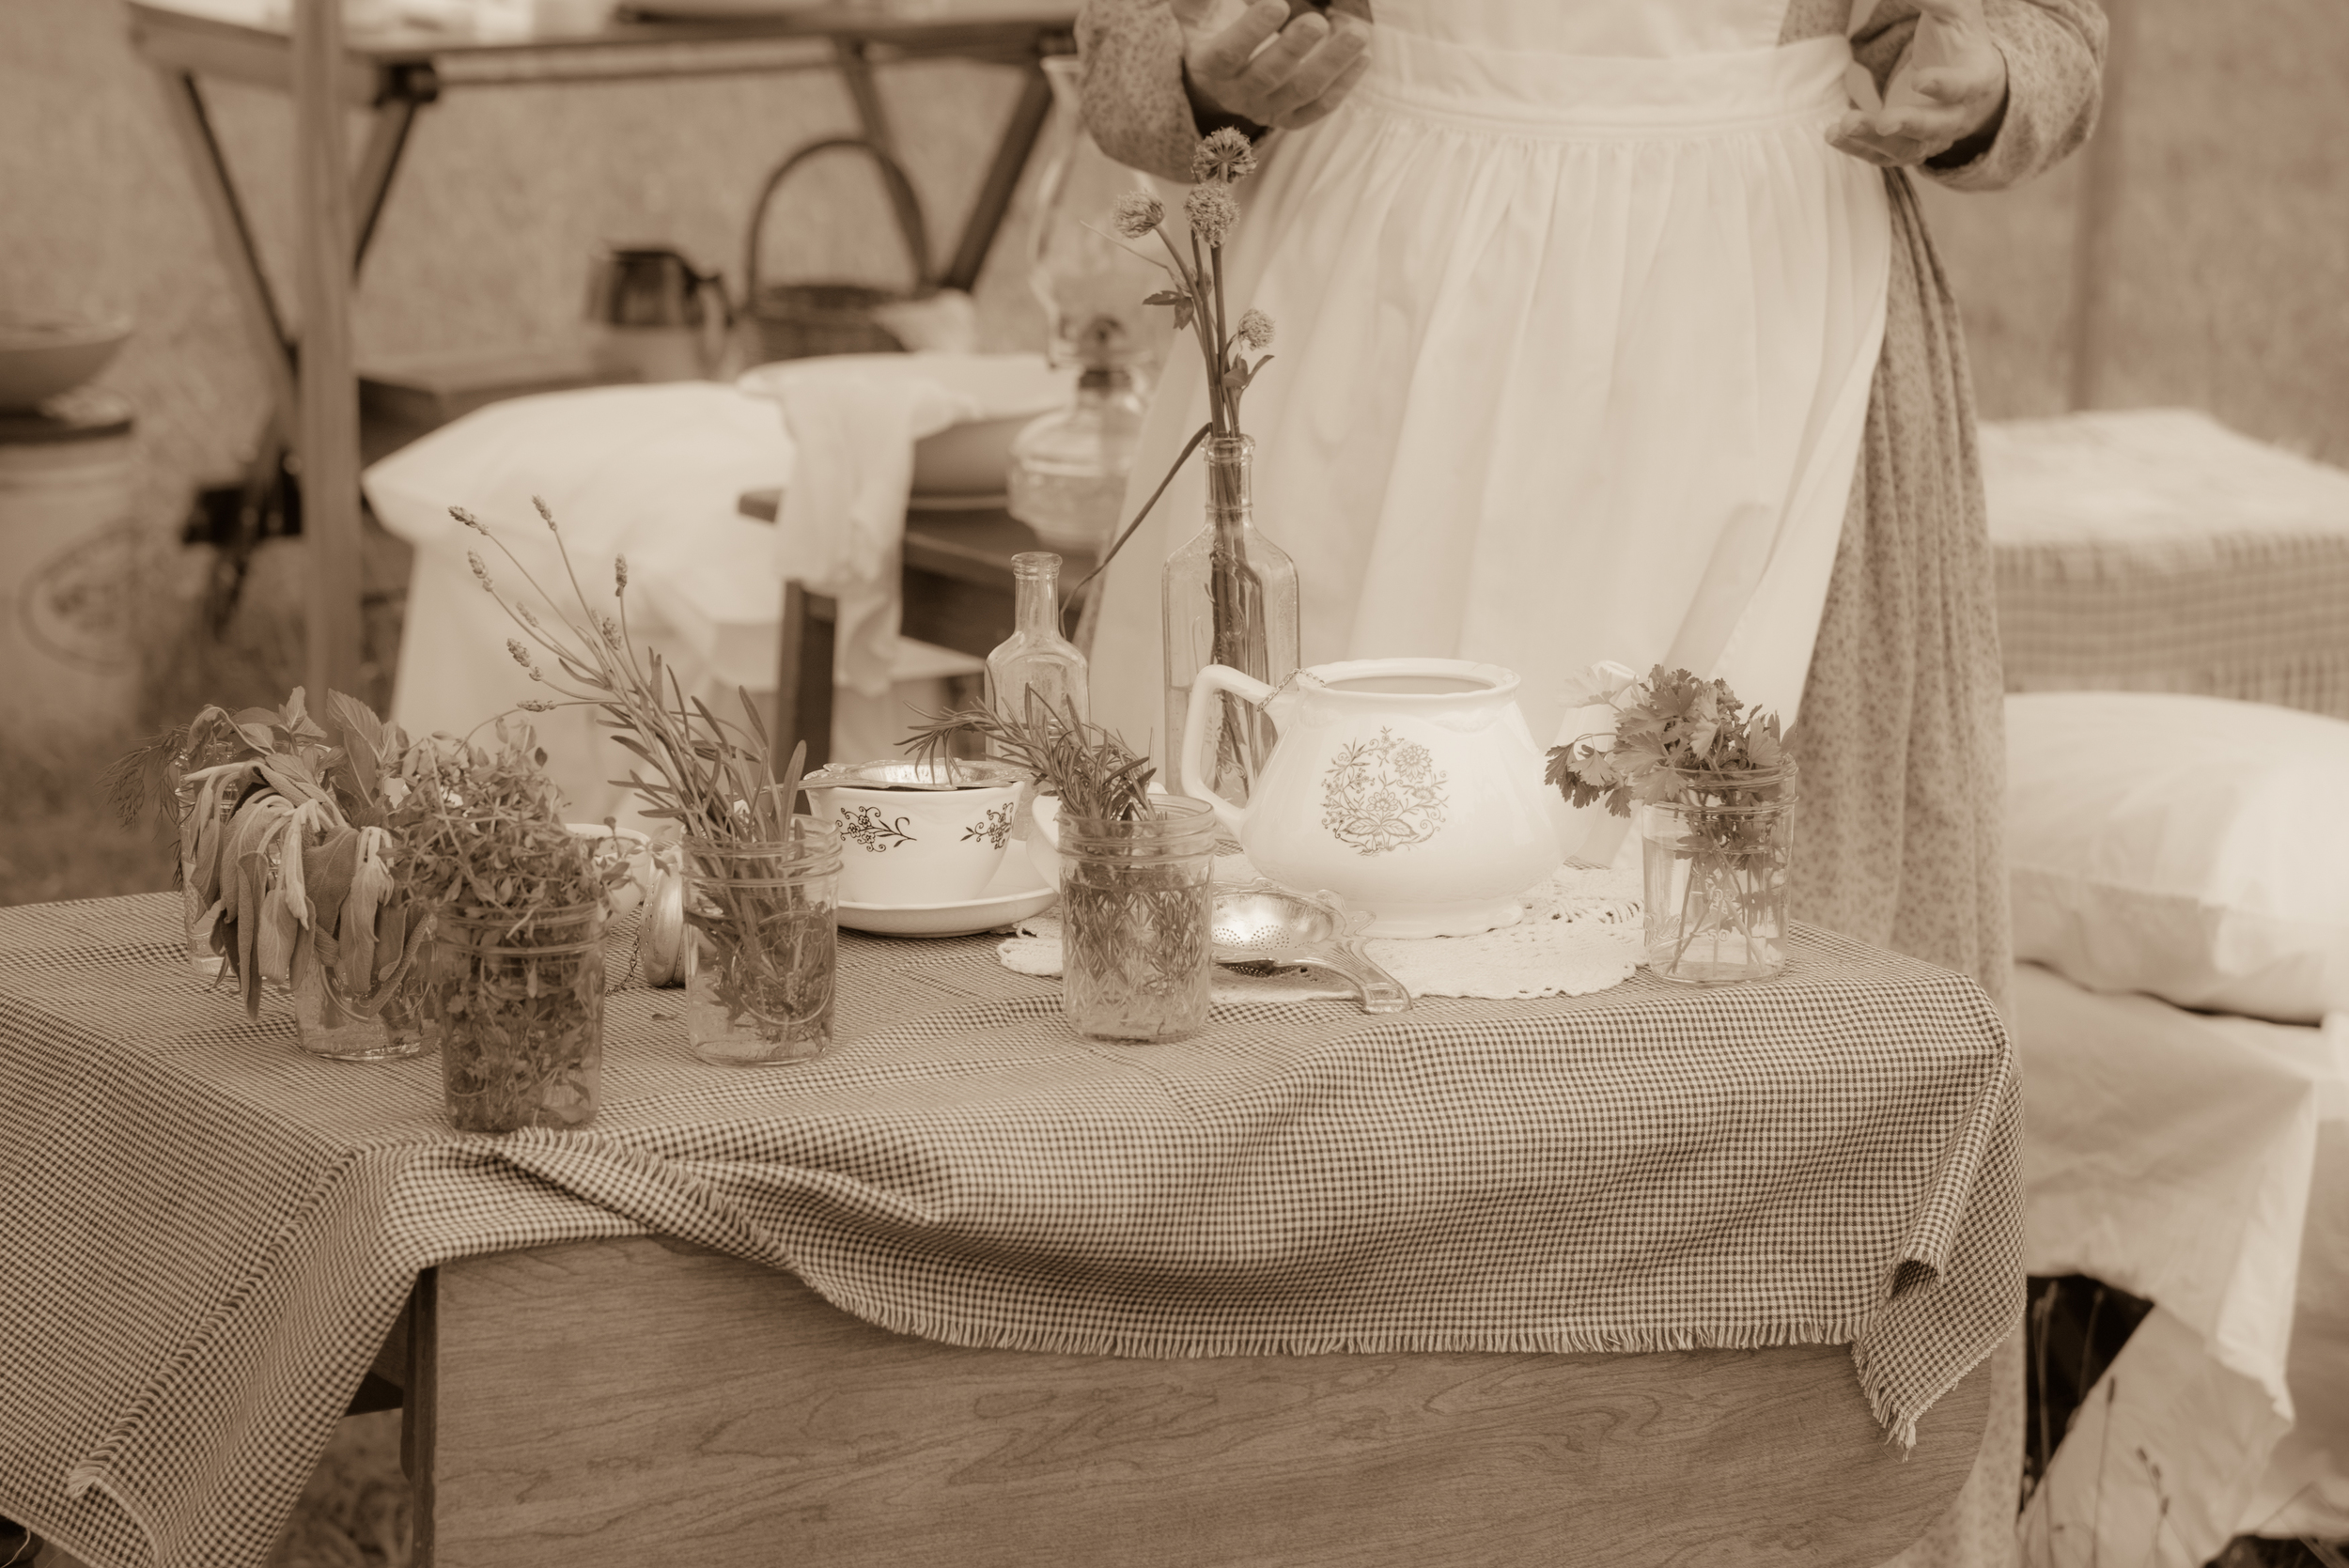 Demonstrating the medicinal uses for herbs